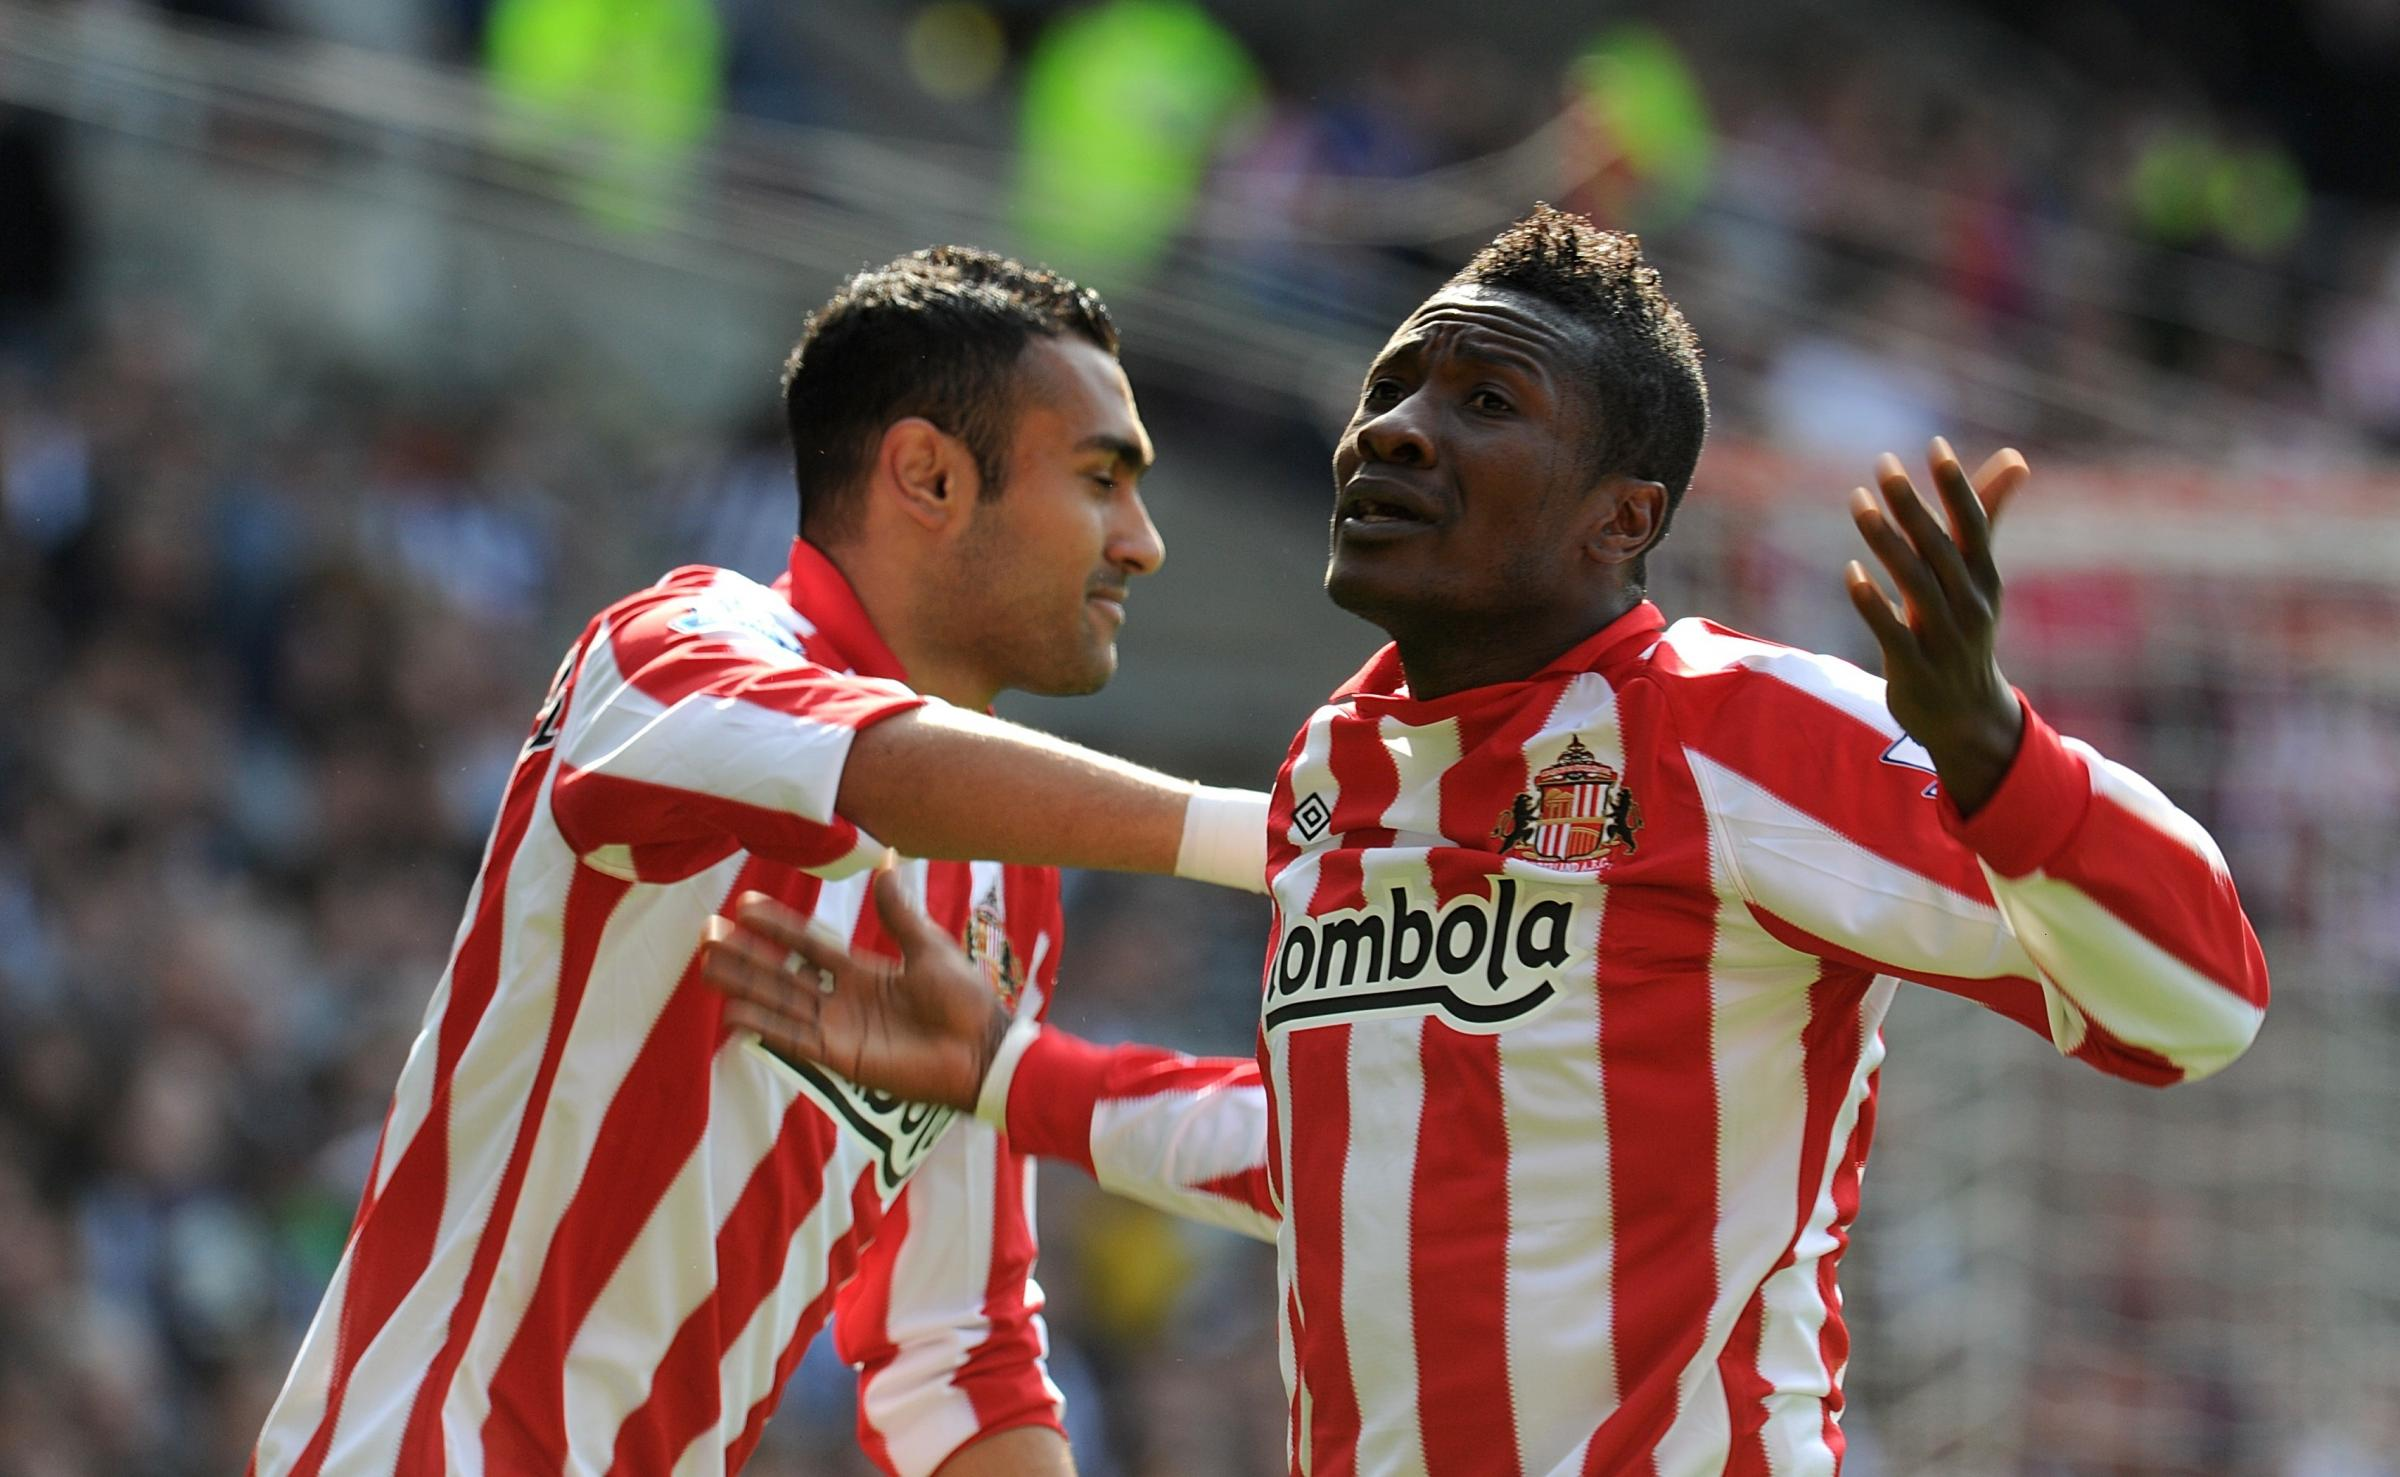 BAD HAIR DAY: Asamoah Gyan, right in his Sunderland days, may have to alter his 'unethical' Mohawk hairstyle in UAE